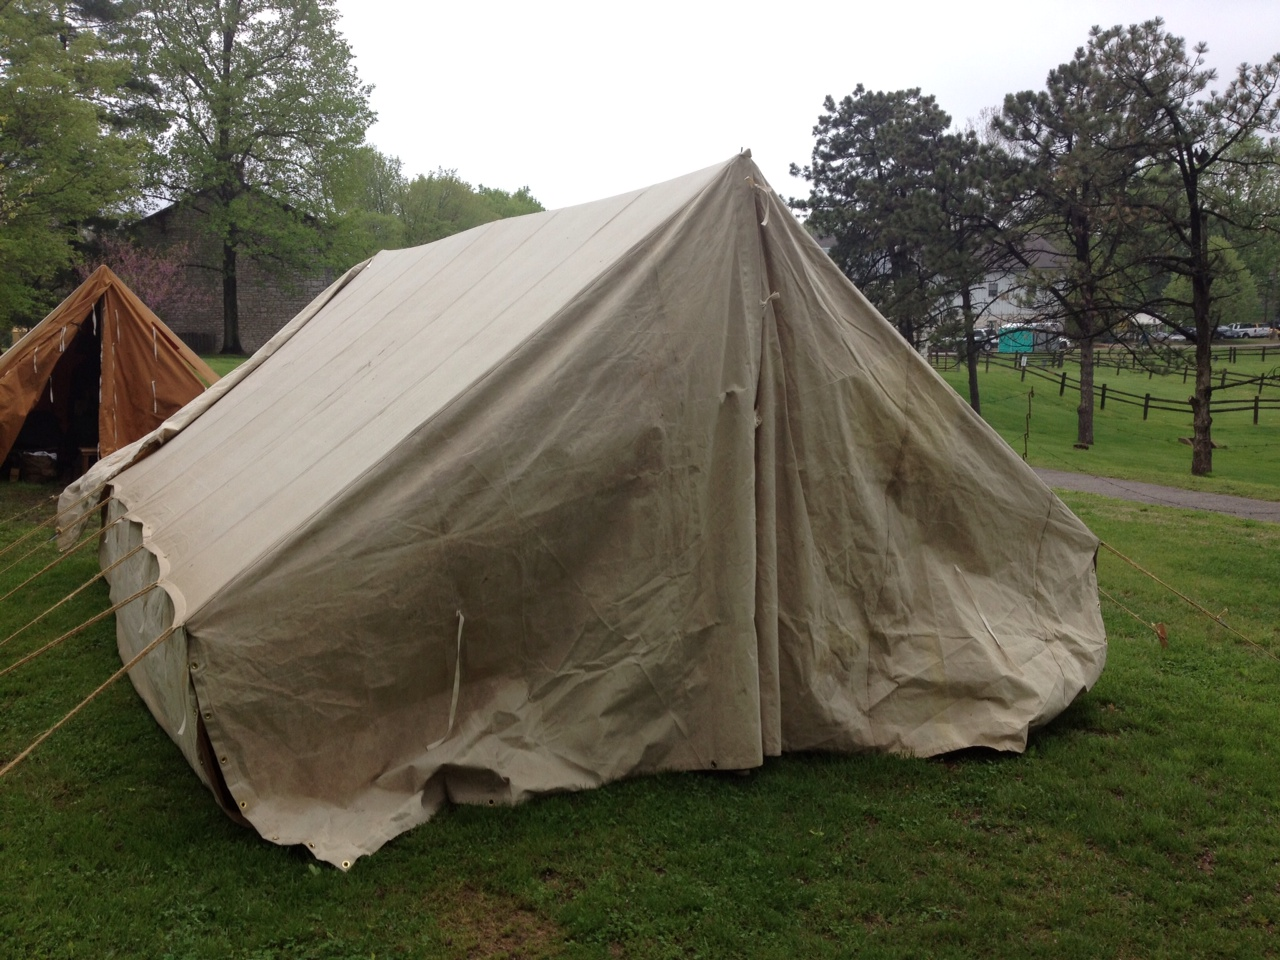 Ex&les of WWII German Tents the Armbruster Tentmaker is now reproducing for living historians museums movie productions ect. Customer aged the canvas ... & Armbruster Manufacturing Co. | WWII German Truppenzelt (Troop Tent ...